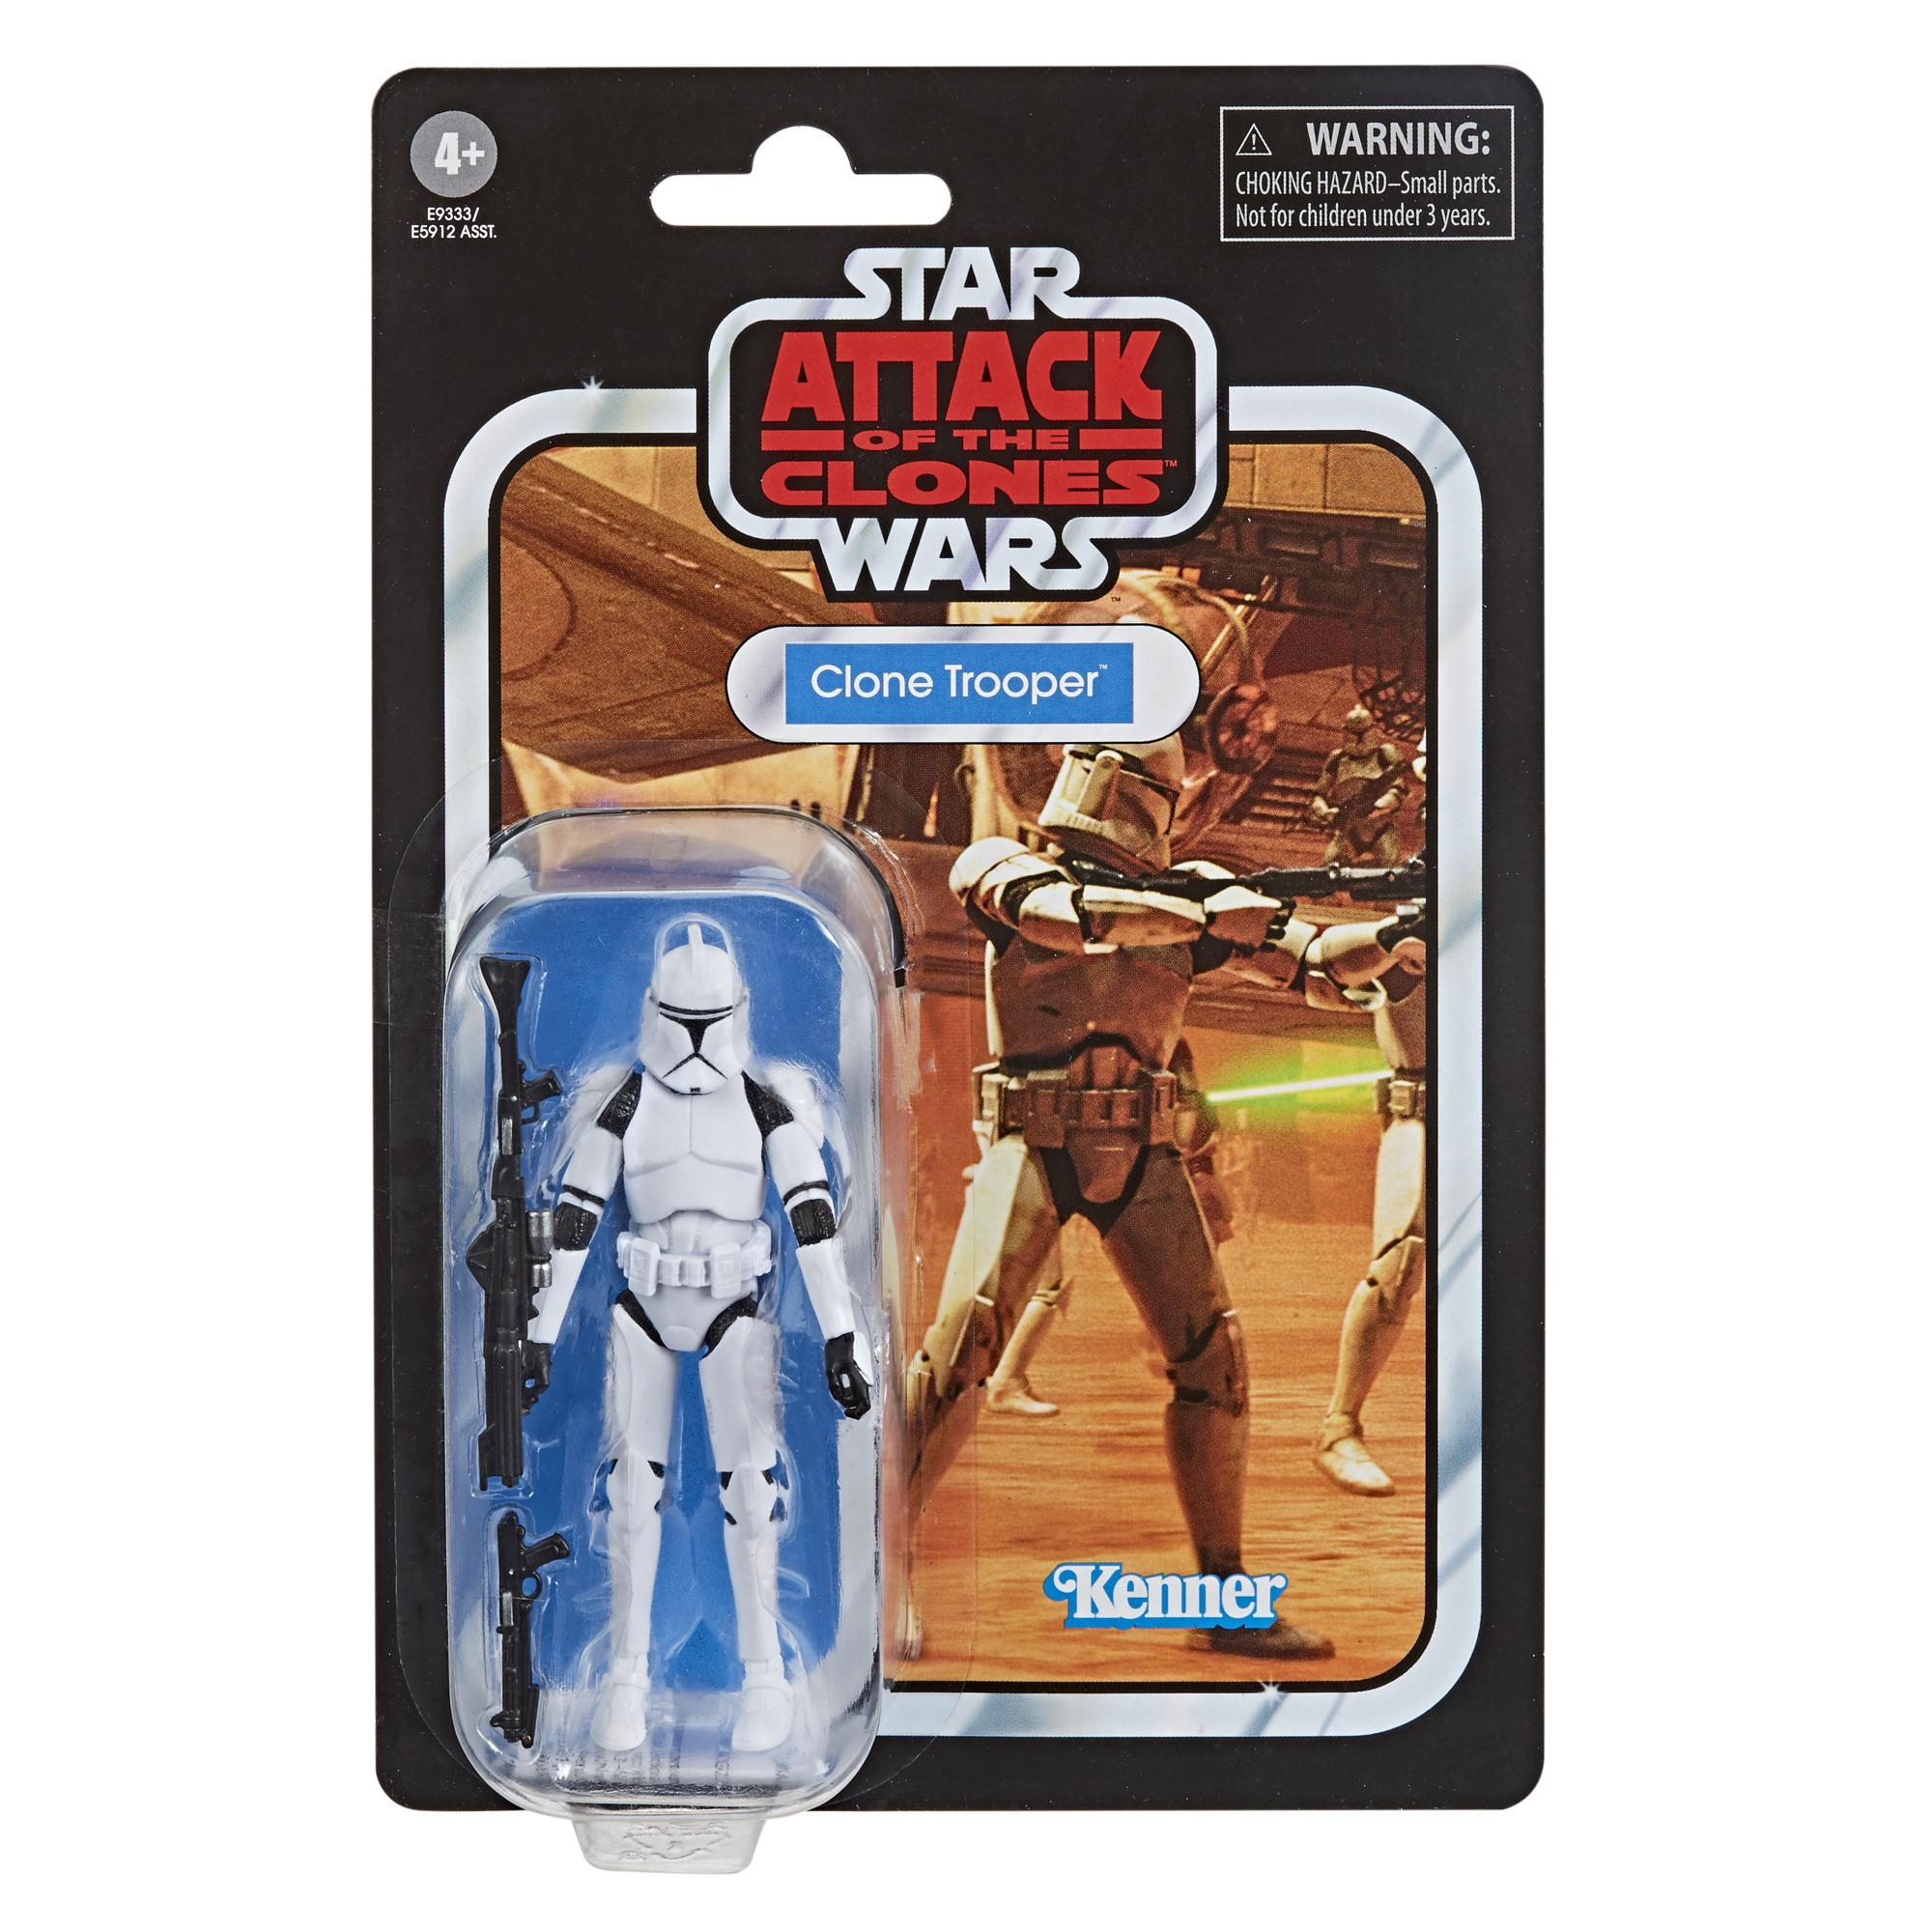 Star Wars The Vintage Collection Clone Trooper Toy 3 75 Inch Scale Star Wars Attack Of The Clones Figure Star Wars